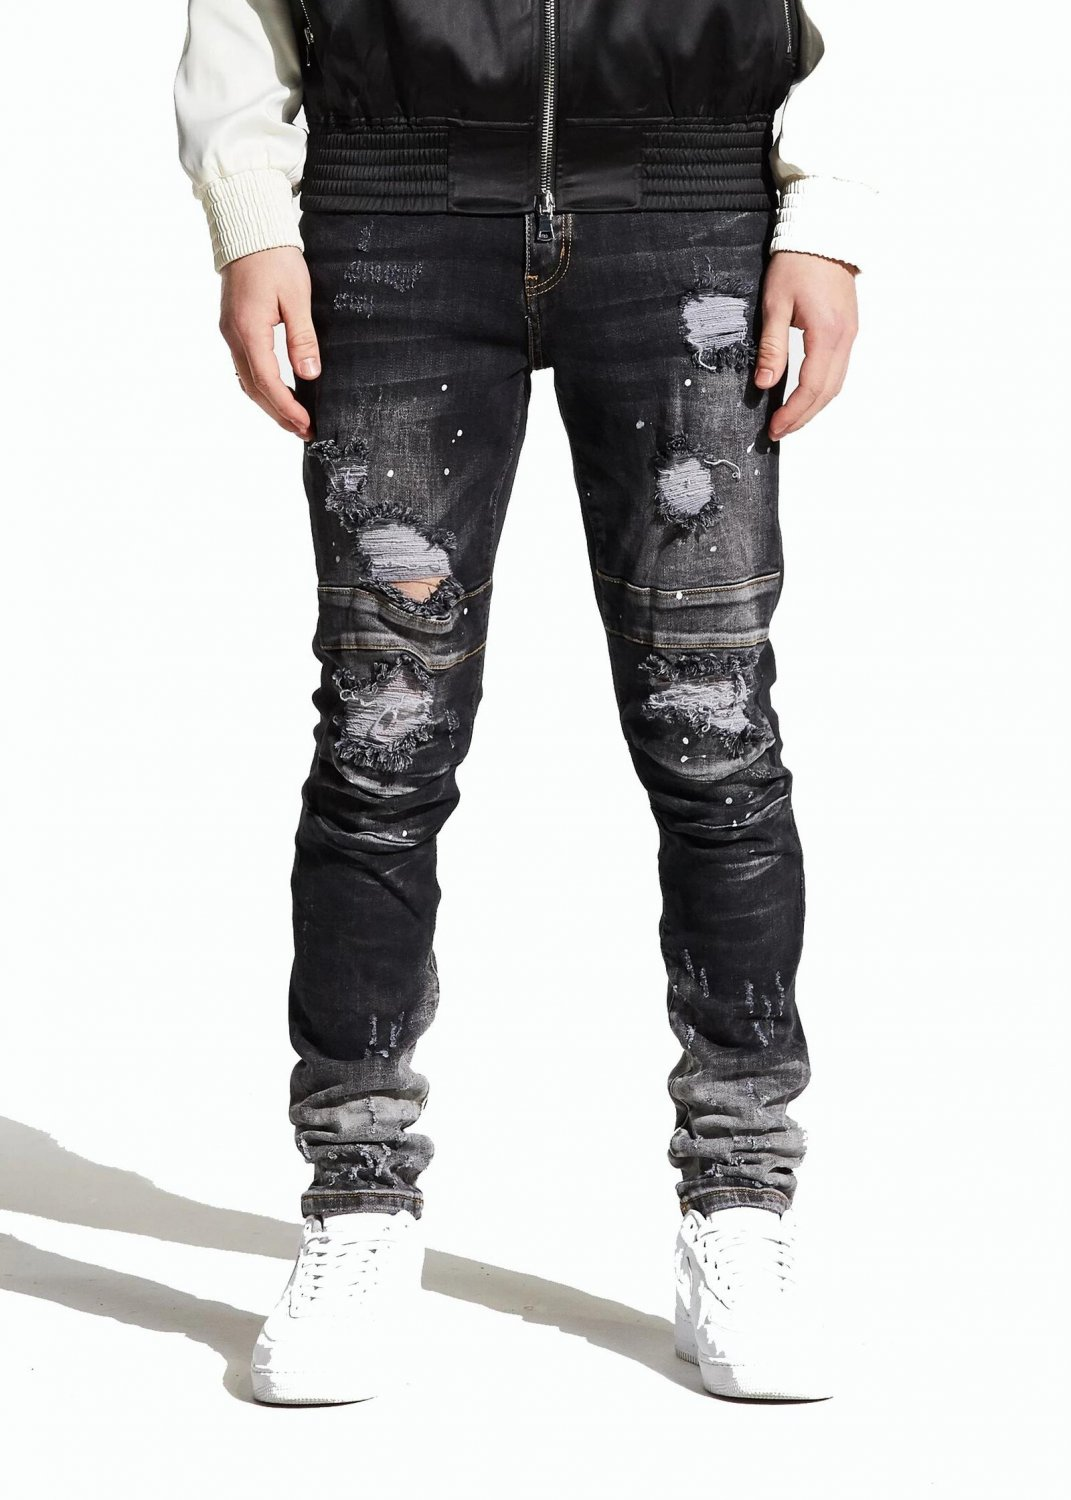 Crysp Denim Men's DUNCAN Jeans CRYSP119-124 - Black - Size 40 - Easy relaxed fit NWTS!